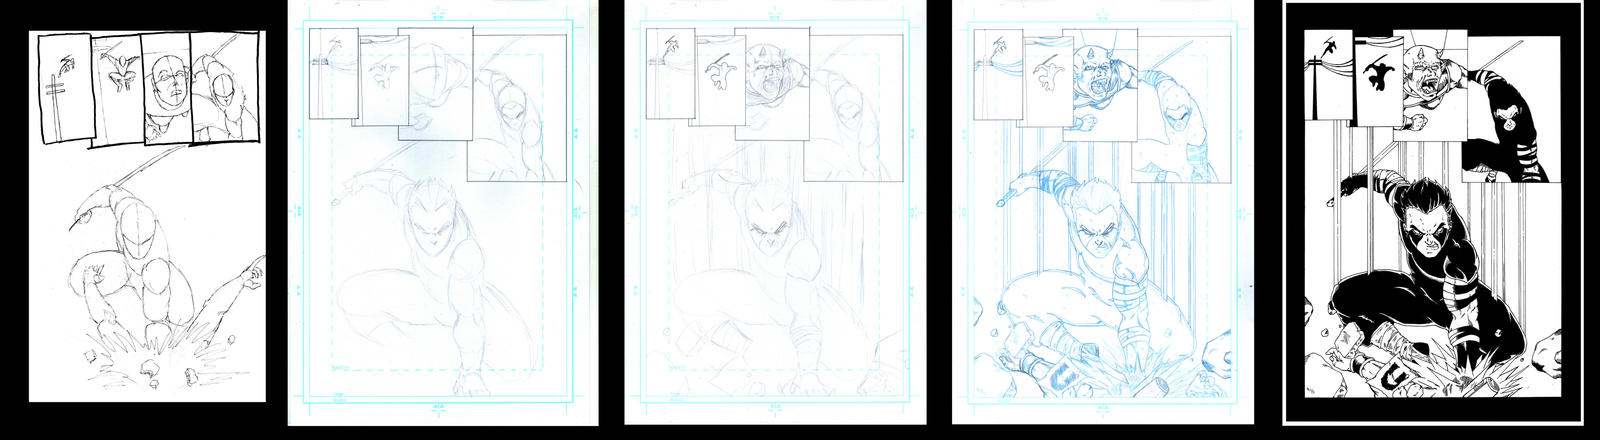 Creating A Comic Page v2.0 by Vegeta1978